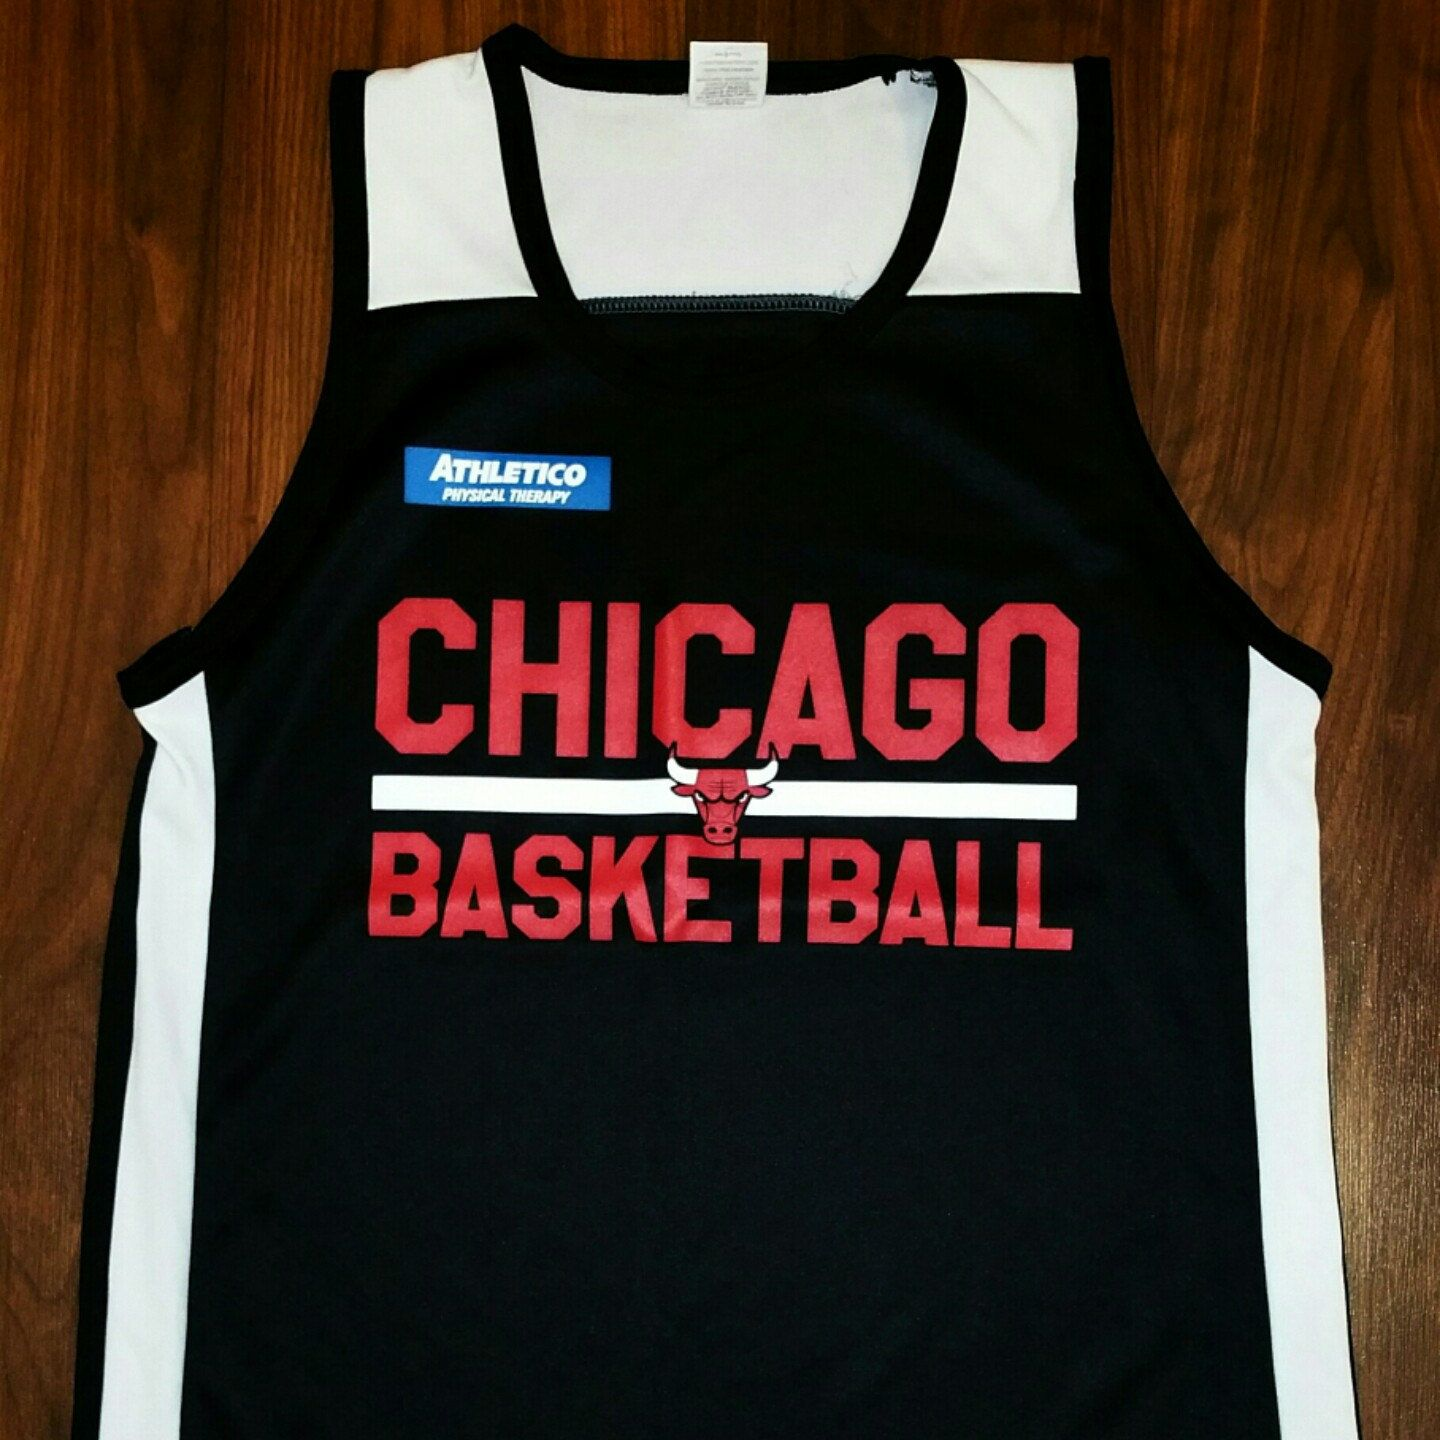 reputable site ea7d5 7c965 Check out this fresh, Chicago Bulls Athletico Practice ...